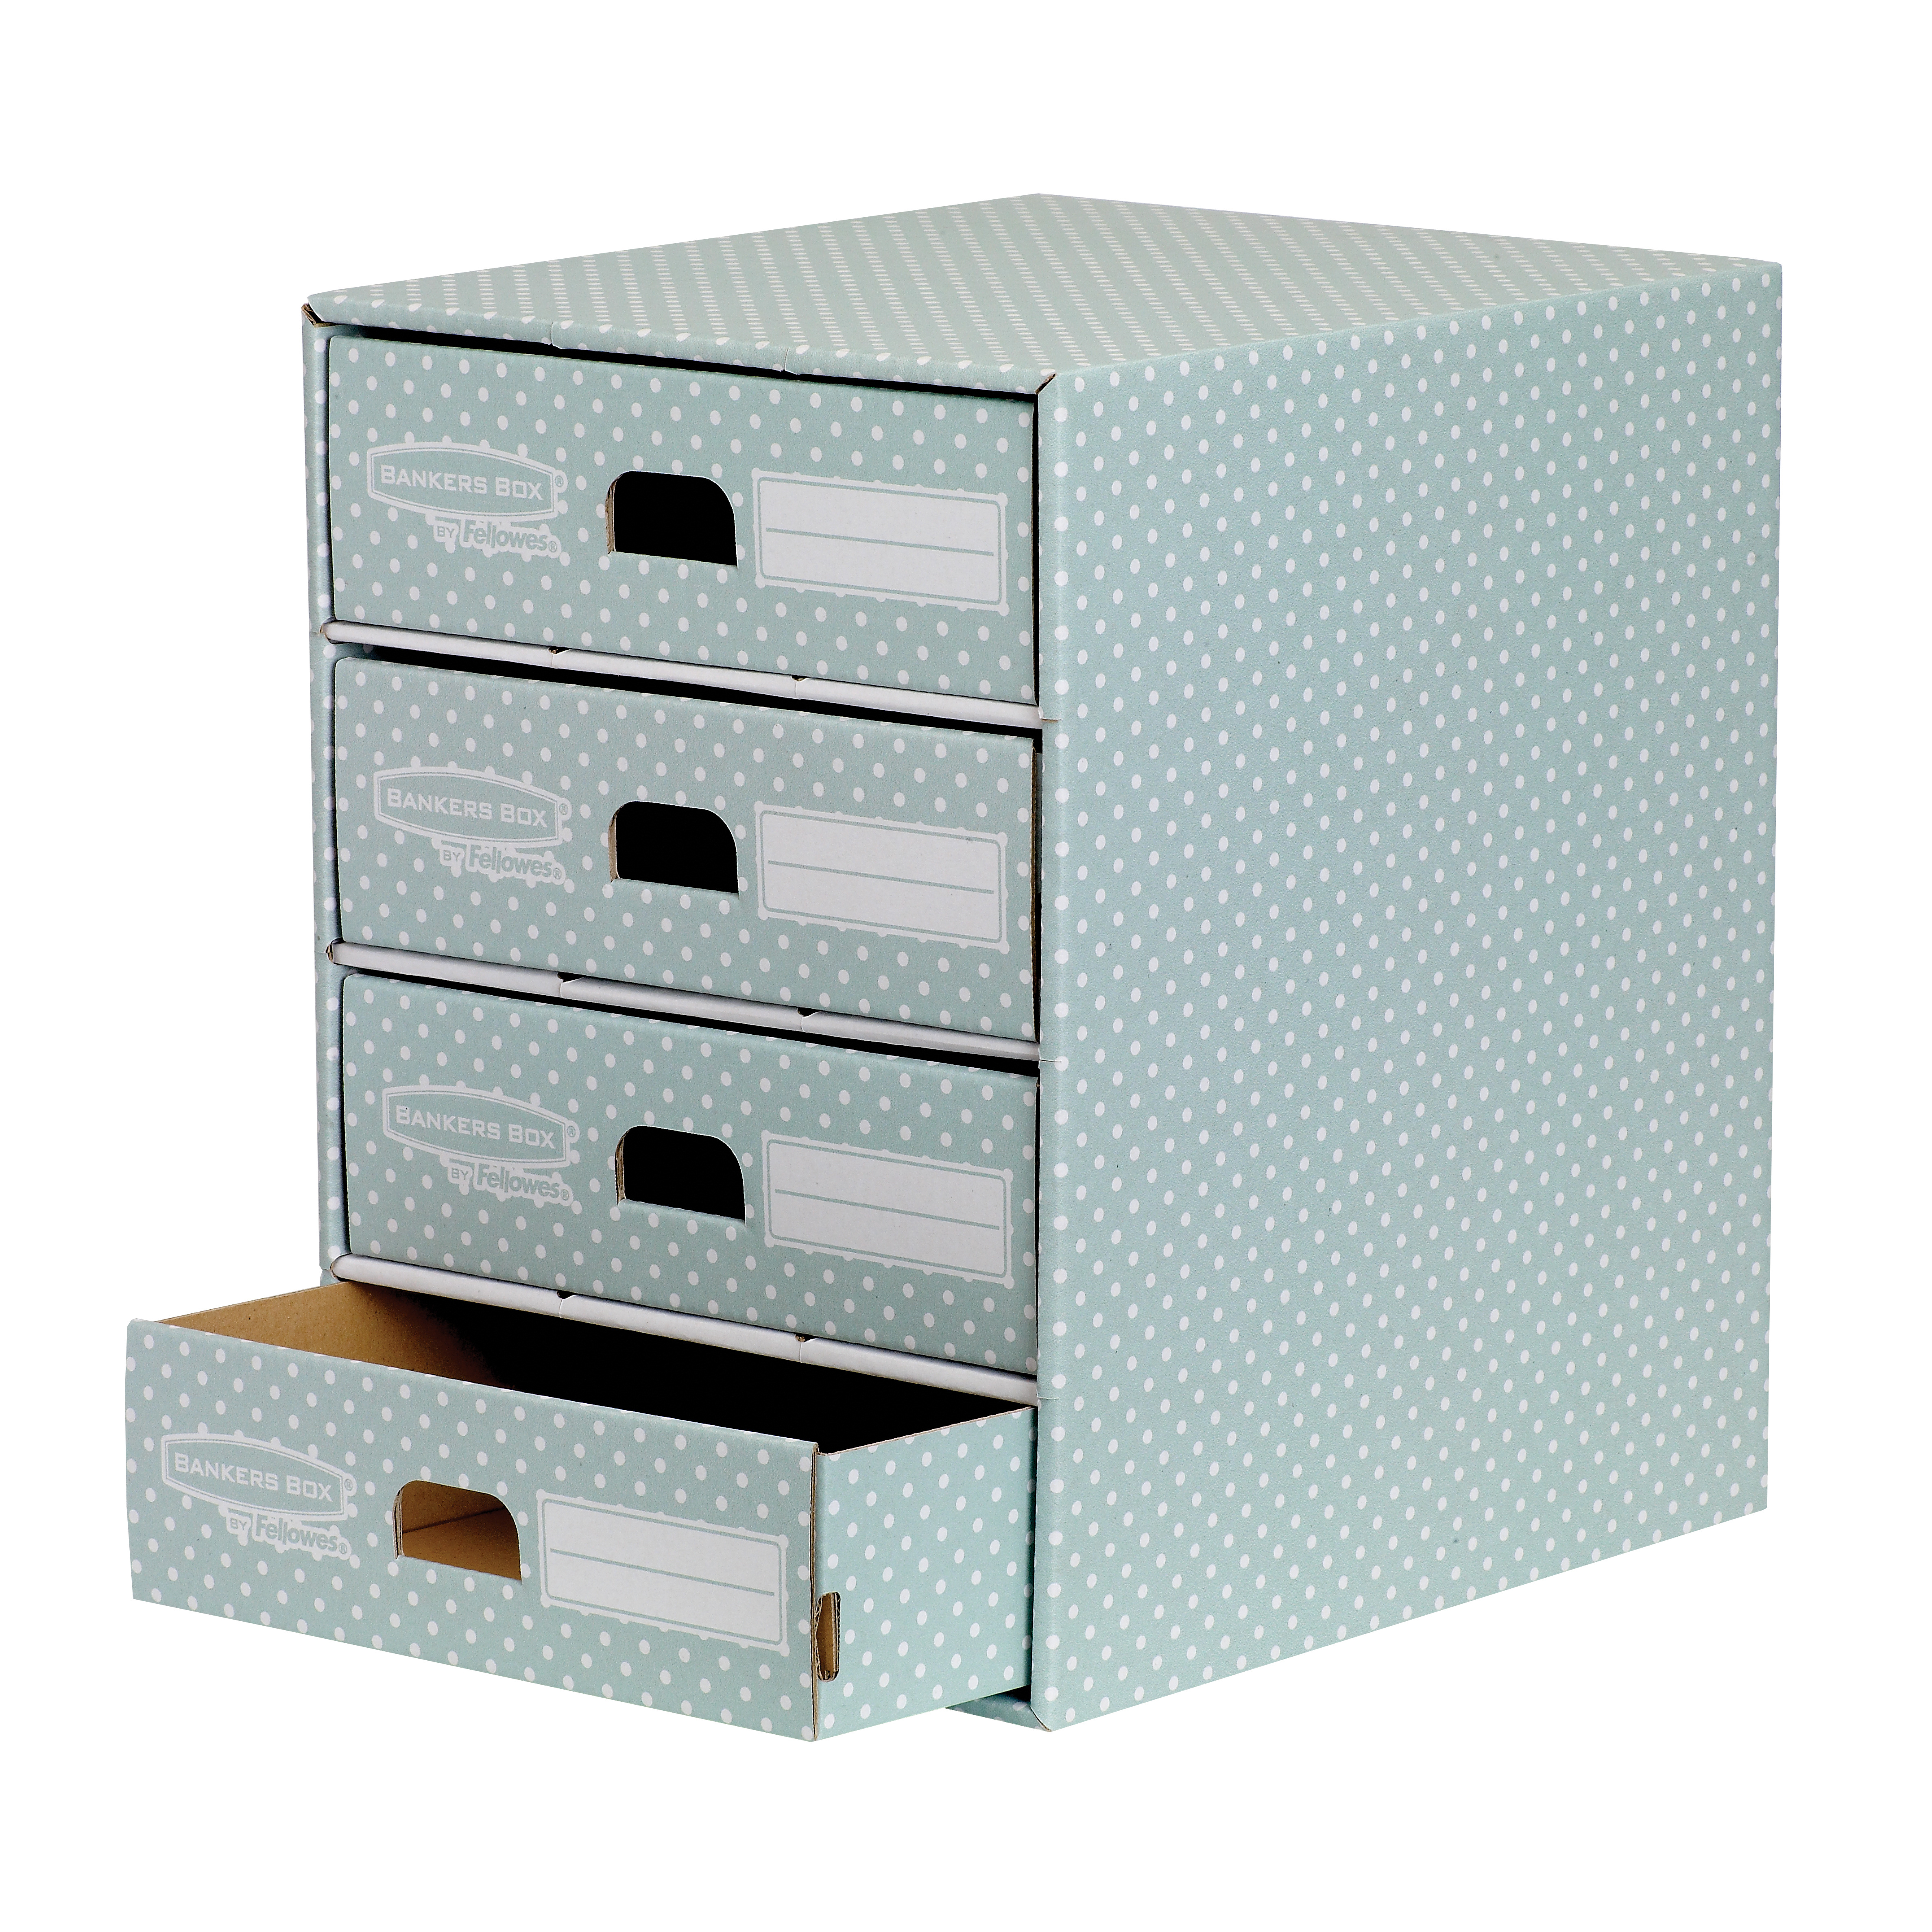 Fellowes Bankers Box 4 Drawer Unit Green/White 4481701